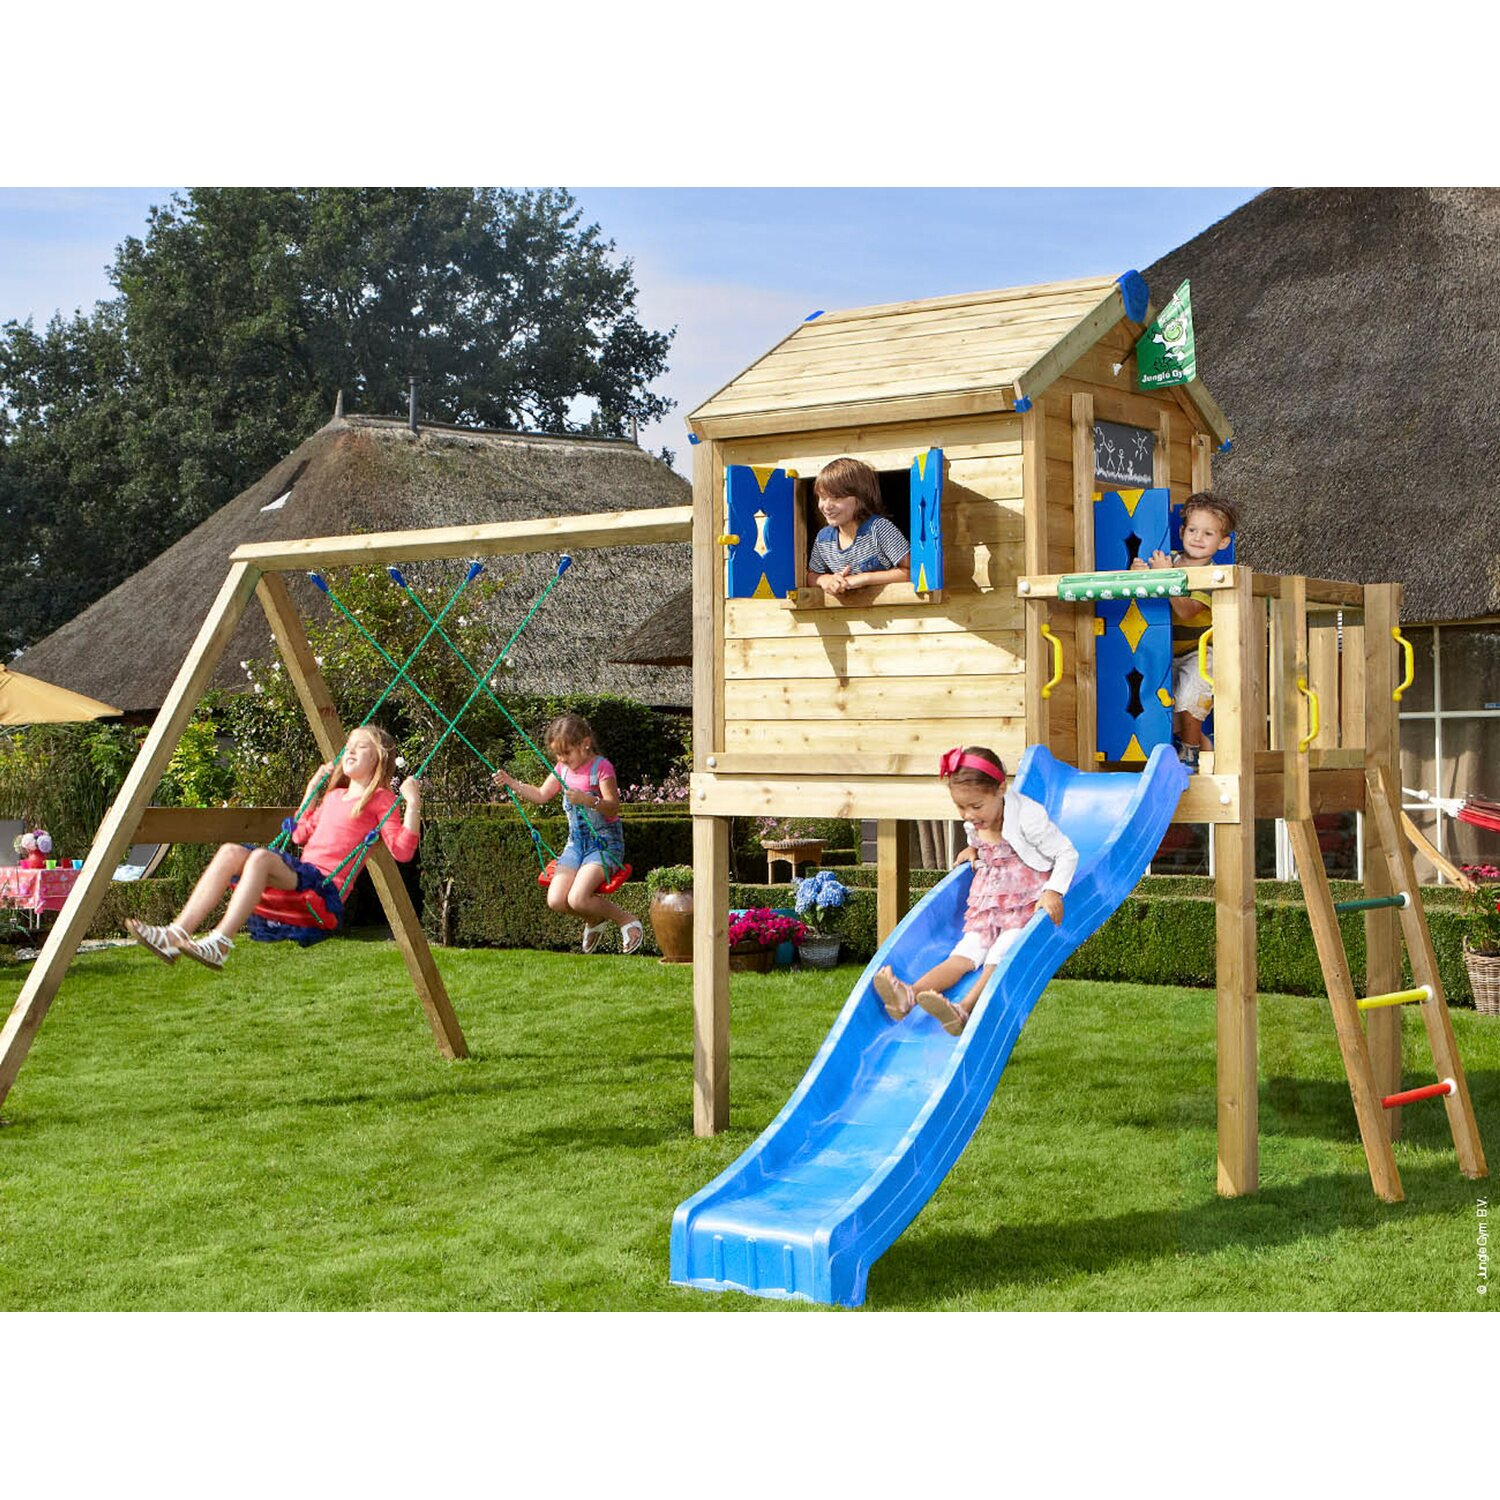 jungle gym spielhaus l 2 schaukel mit rutsche blau kaufen. Black Bedroom Furniture Sets. Home Design Ideas